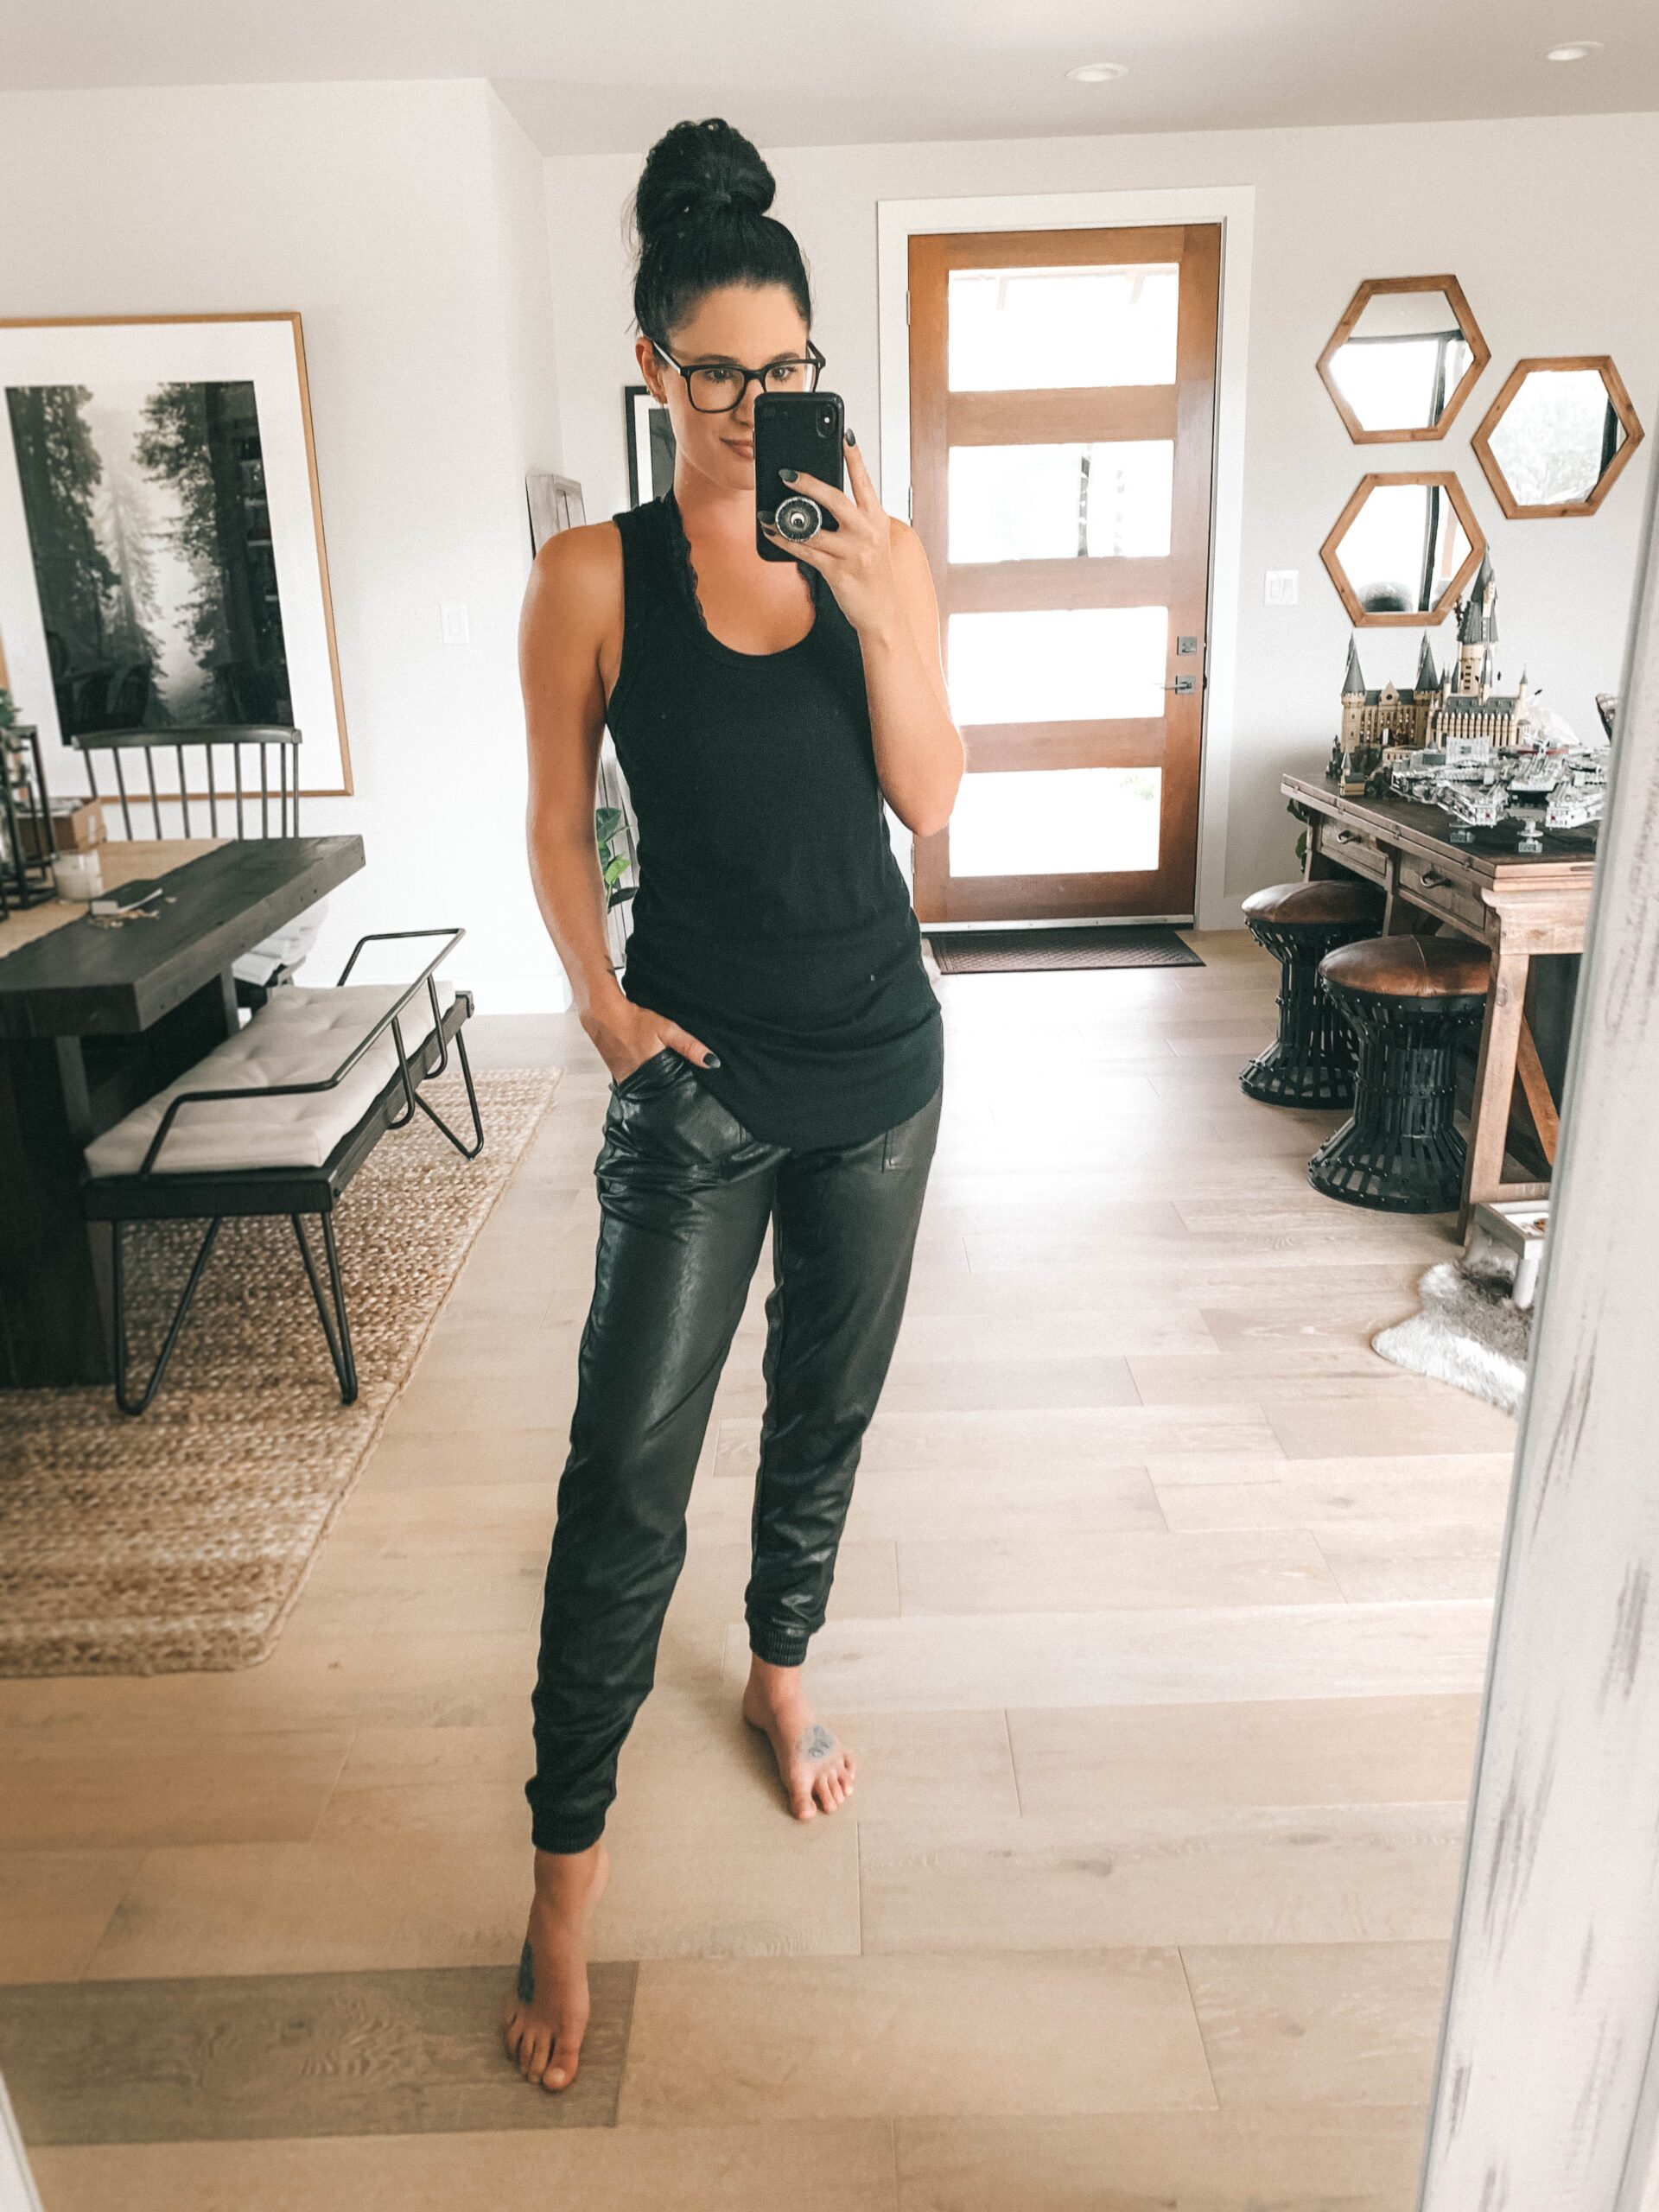 Nordstrom Anniversary Sale by popular Austin fashion blog, Dressed to Kill: image of a woman wearing a black tank top and black faux leather jogger pants.